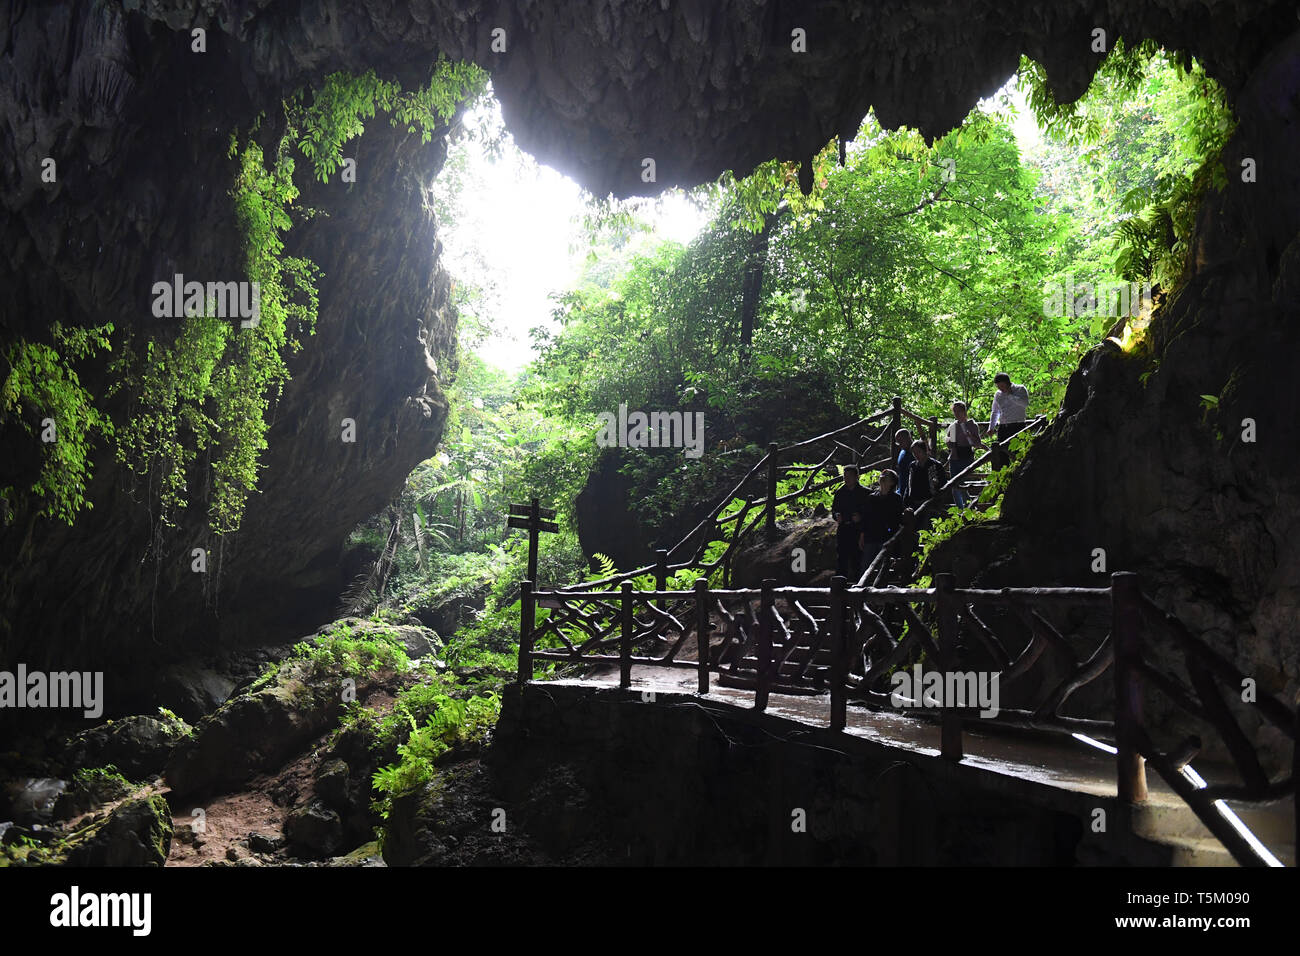 (190425) -- NANNING, April 25, 2019 (Xinhua) -- Tourists visit the Tongling Canyon of Jingxi City, south China's Guangxi Zhuang Autonomous Region, April 16, 2019. Guangxi has promoted major tourism projects and brands in recent years, and the customs of border area have attracted a lot of tourists. (Xinhua/Lu Boan) Stock Photo